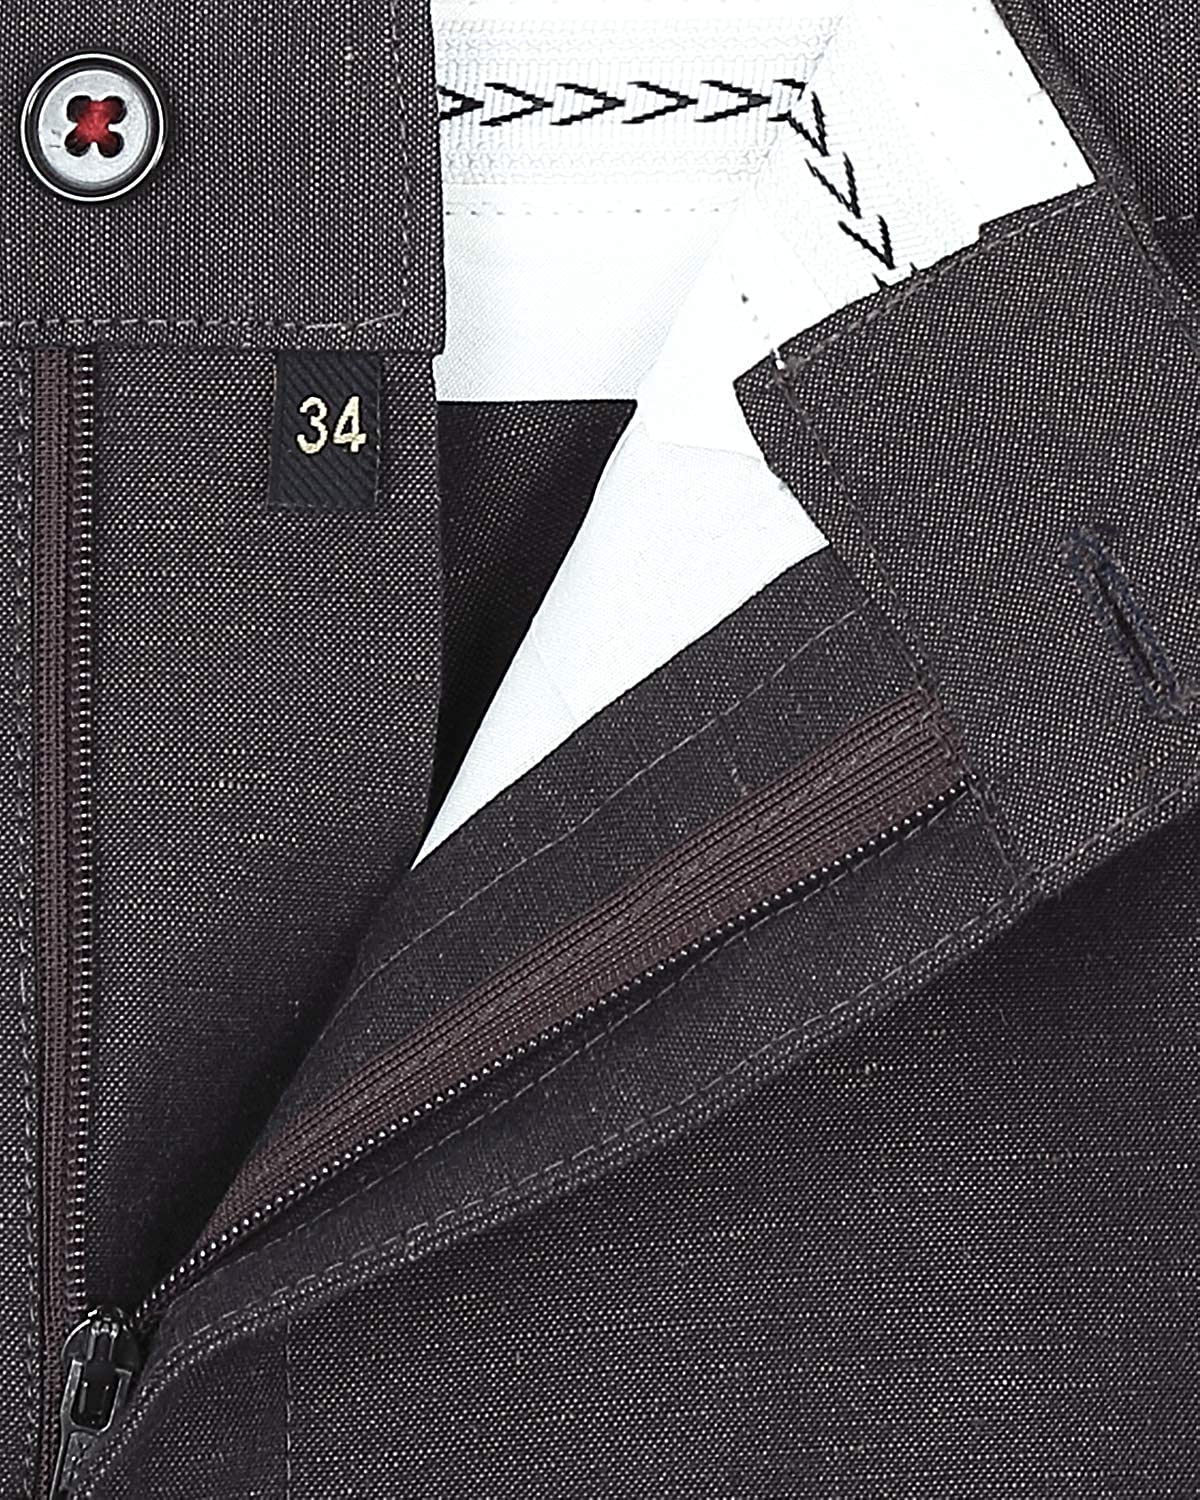 36 French crown Chocolate Brown Regular fit Linen Trouser